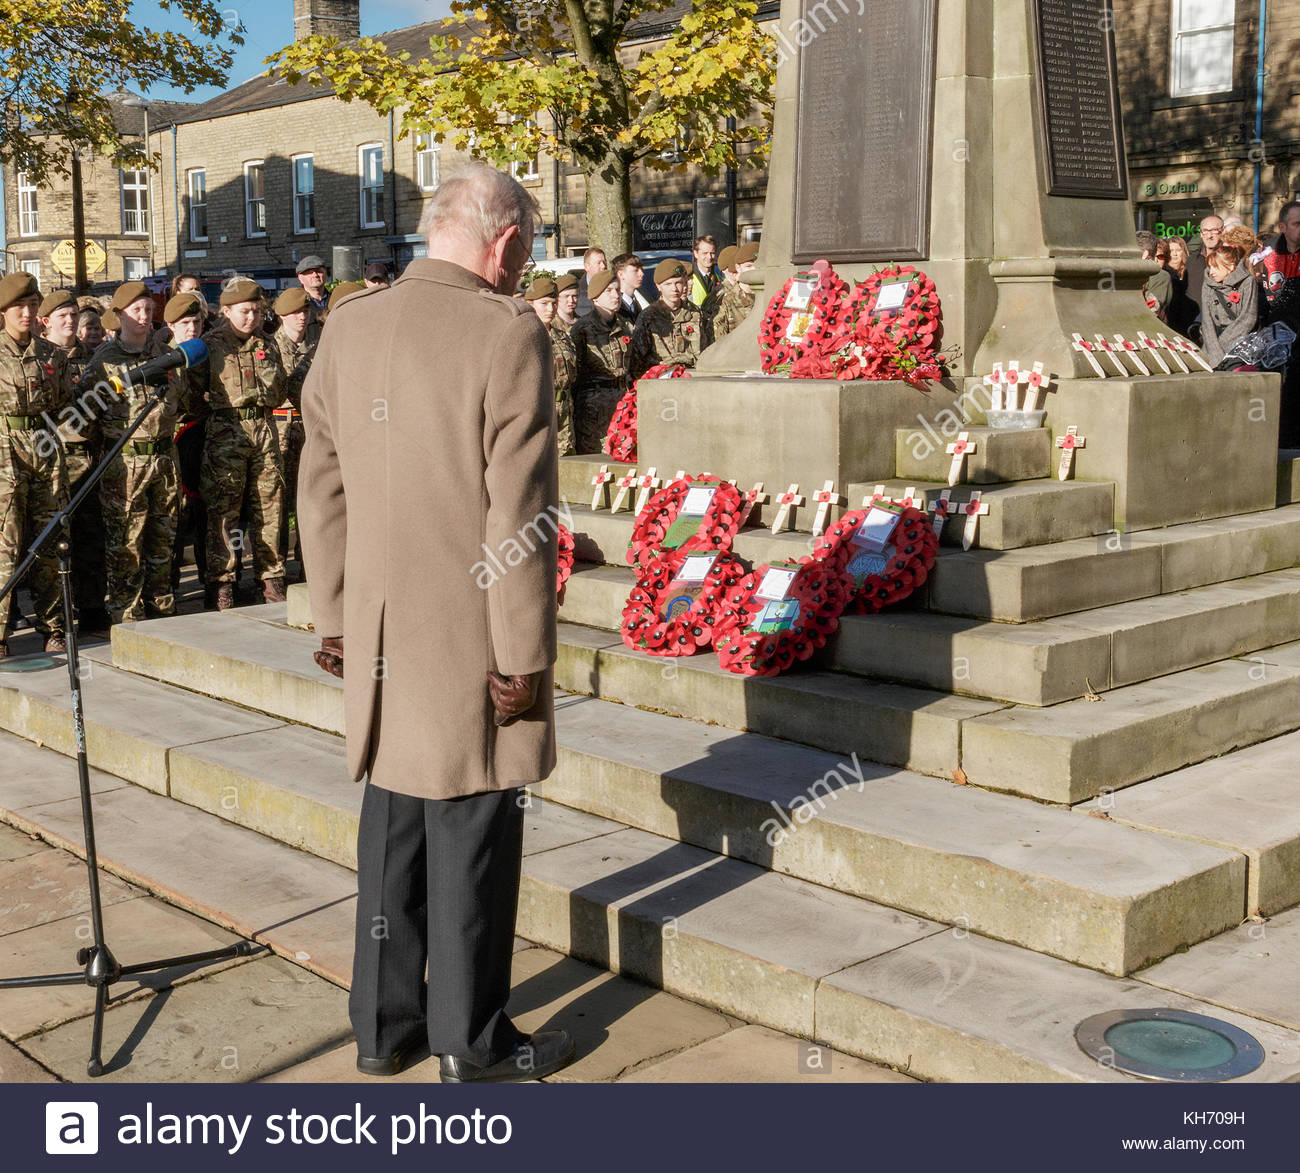 Reportage, archival,Remembrance service 12 November 2017 Glossop England  the Deputy lieutenant, Mr David Holtom, - Stock Image